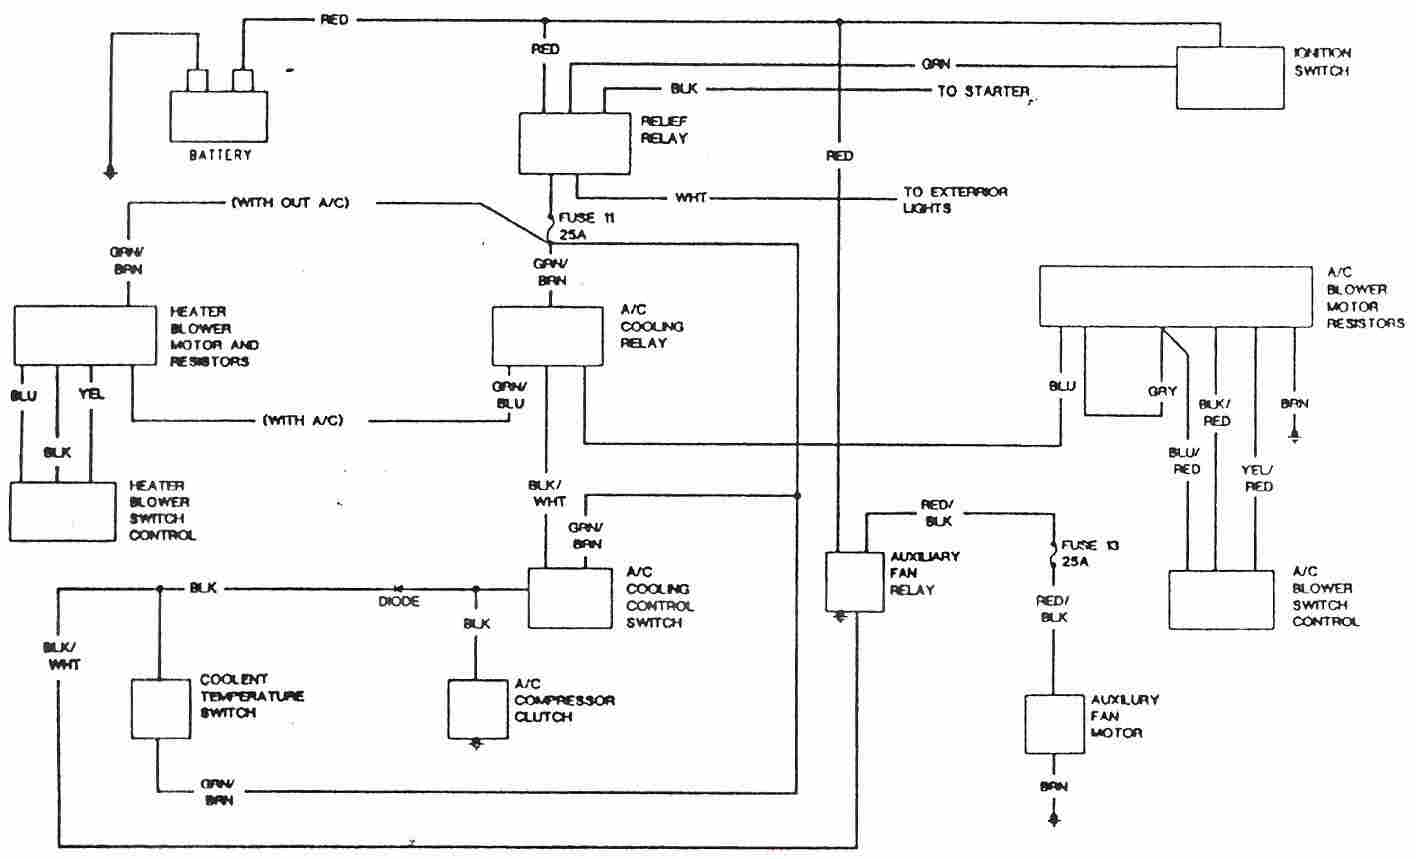 #383838 Air Conditioning Electrical Wiring Diagram Conditioning  Most Effective 9515 Central Air Conditioner Installation Diagram pictures with 1416x859 px on helpvideos.info - Air Conditioners, Air Coolers and more